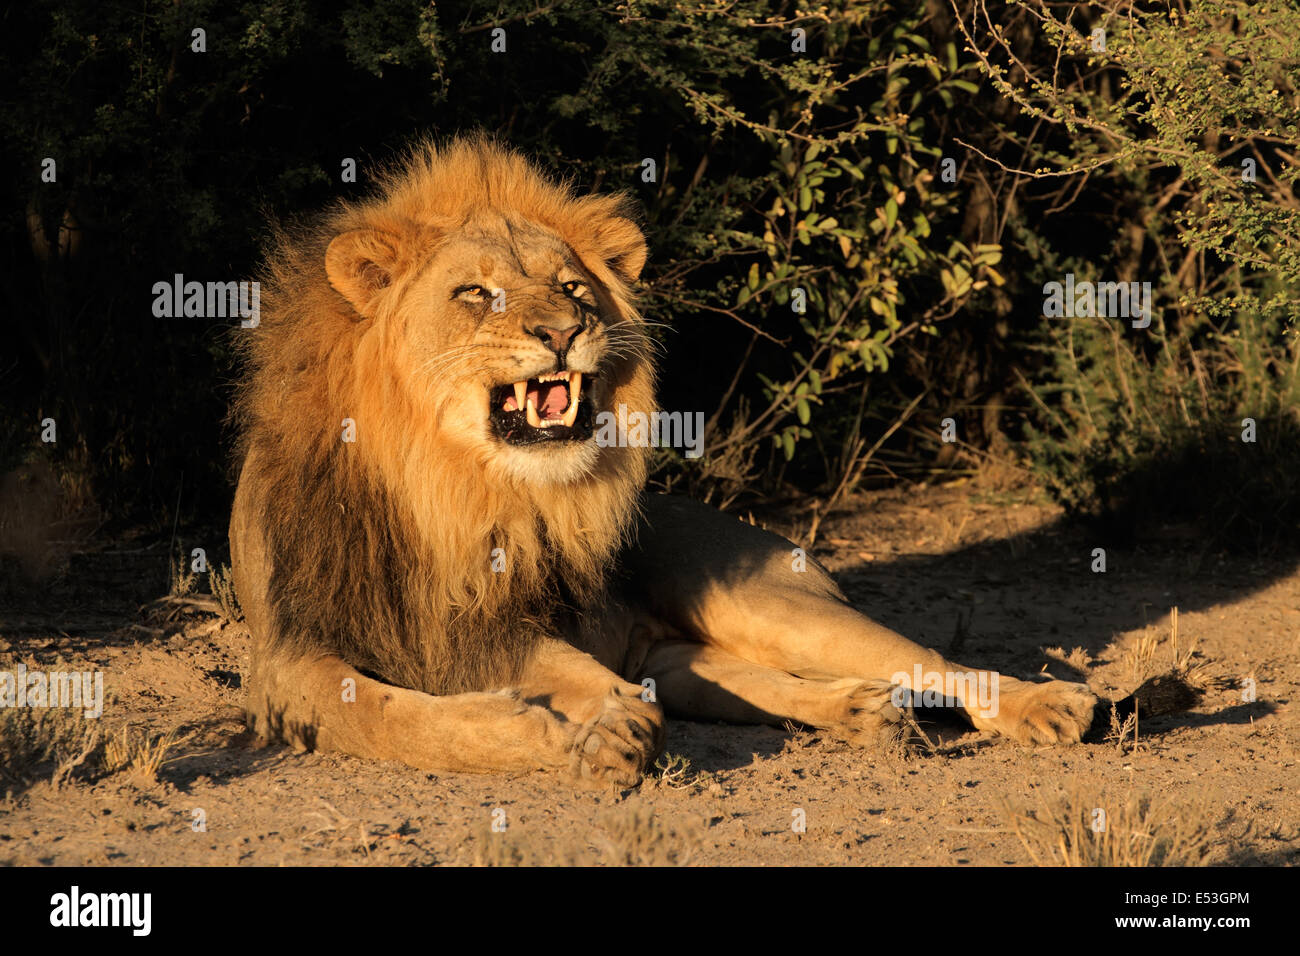 Big male African lion (Panthera leo) snarling, South Africa - Stock Image